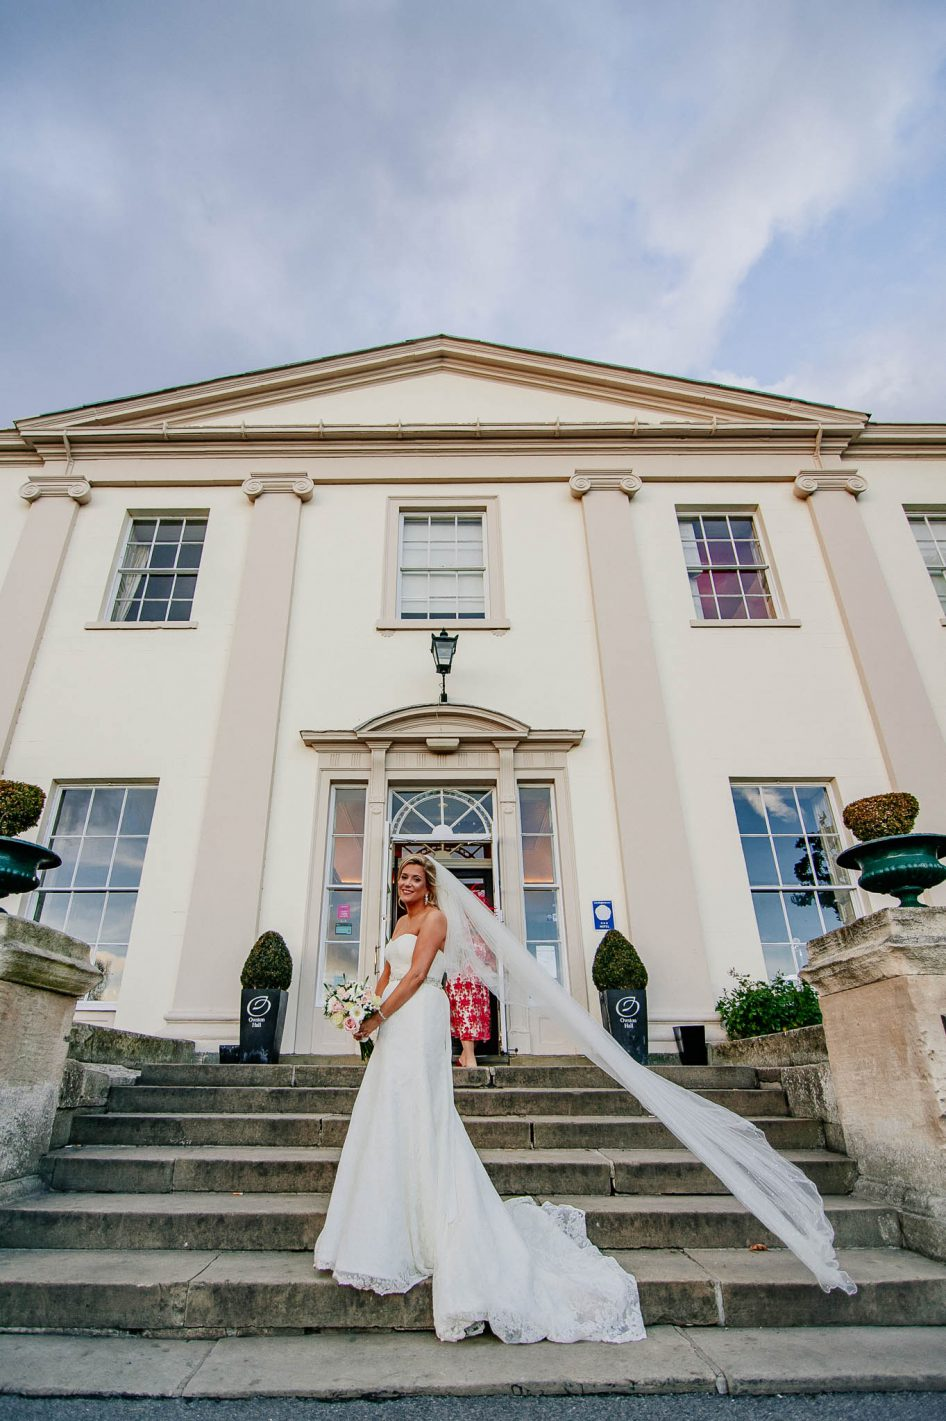 Bride with veil outside Owston Hall Wedding venue in Doncaster